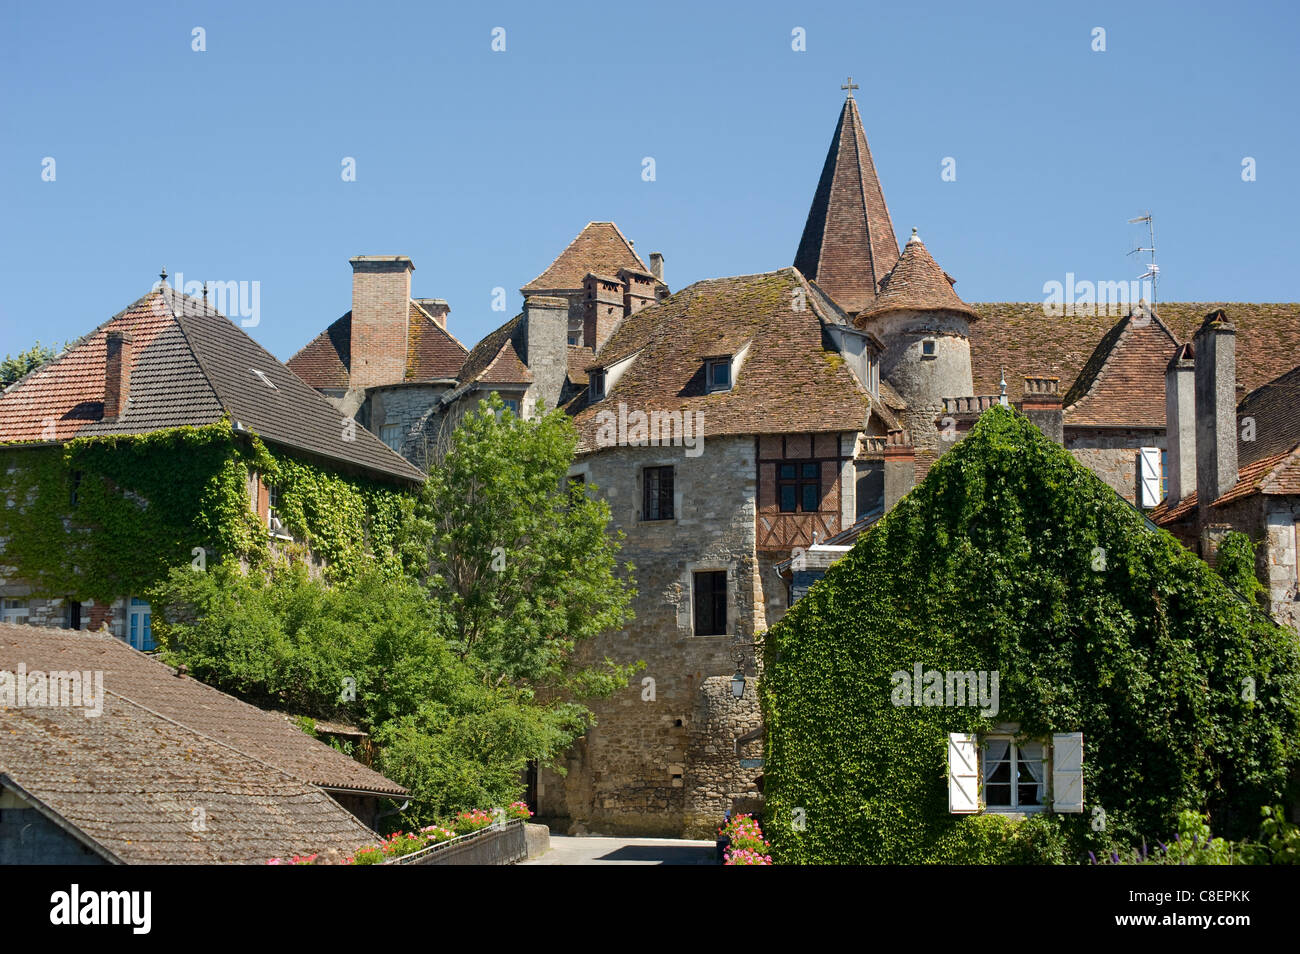 Picturesque village of Carennac and typical Quercy architecture situated on the banks of the Dordogne River, Dordogne, - Stock Image